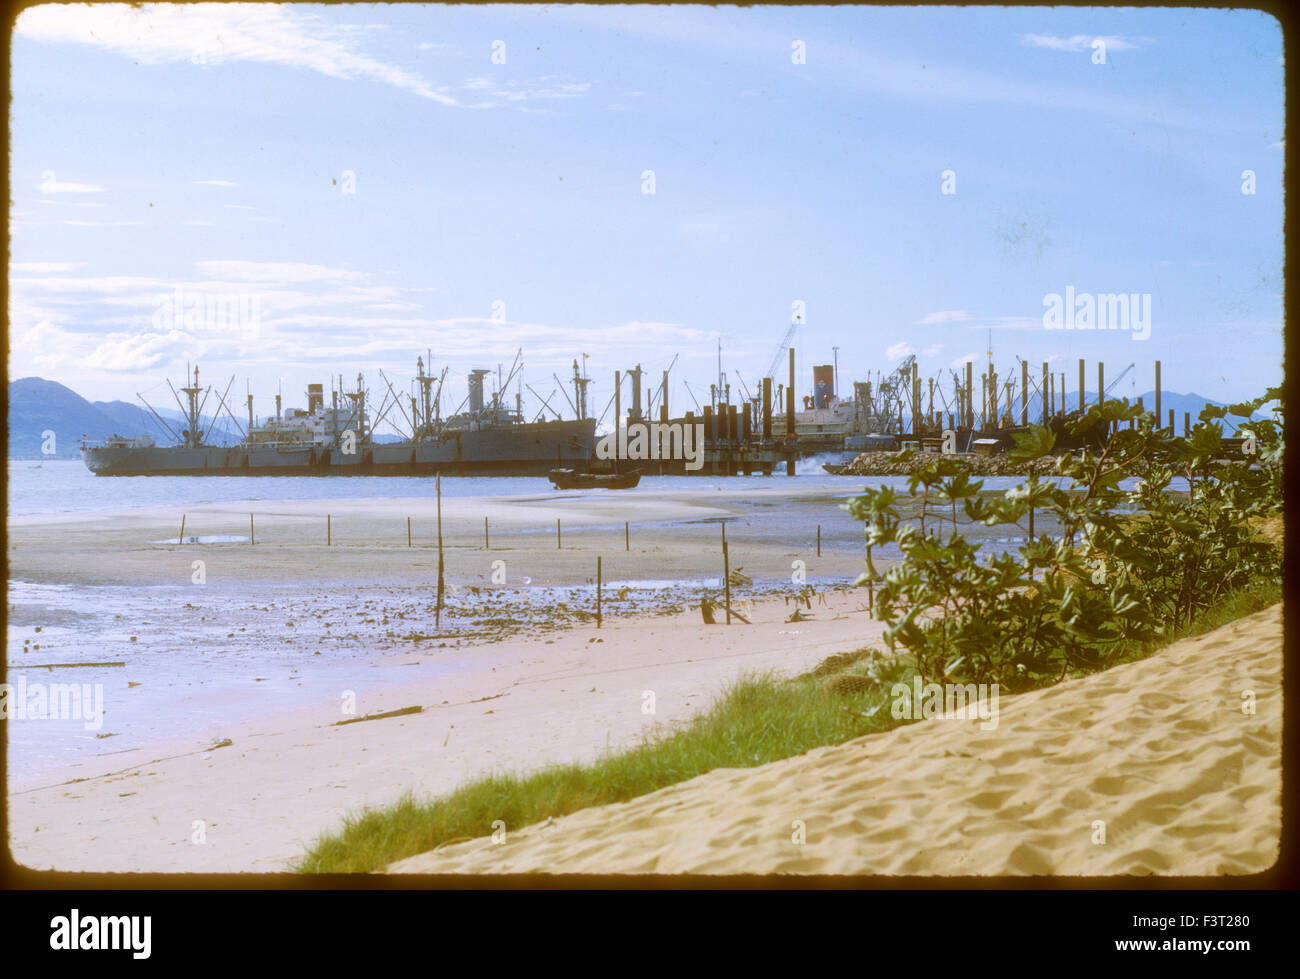 United States Navy ships line up in Cam Rahn Bay harbor where many supplies for the war arrived in South Vietnam - Stock Image